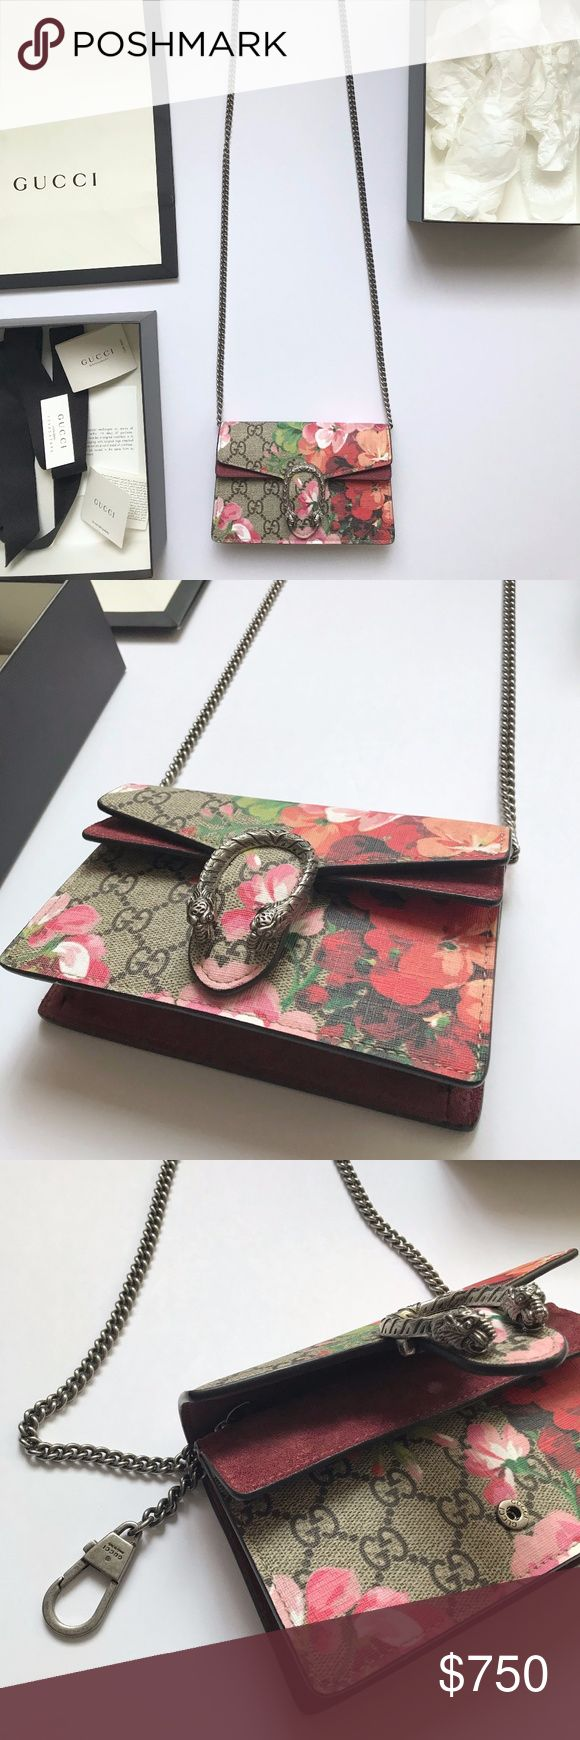 "Gucci Dionysus Authentic GG Bloom Supreme Mini Bag Beautiful Gucci Dionysus GG Blooms Super Mini Bag in like new condition This was purchased on vacation and kept in perfect condition.  Removable chain shoulder strap, 23.5"" drop Attached key ring that can attach to a separate bag Tiger head closure with crystals Silvertone hardware One outside flap pocket under flap Lined 6.5""W x 4""H x 1.5""D GG Supreme canvas, made using an earth-conscious process, with taupe suede detail Made in Italy Gucci…"